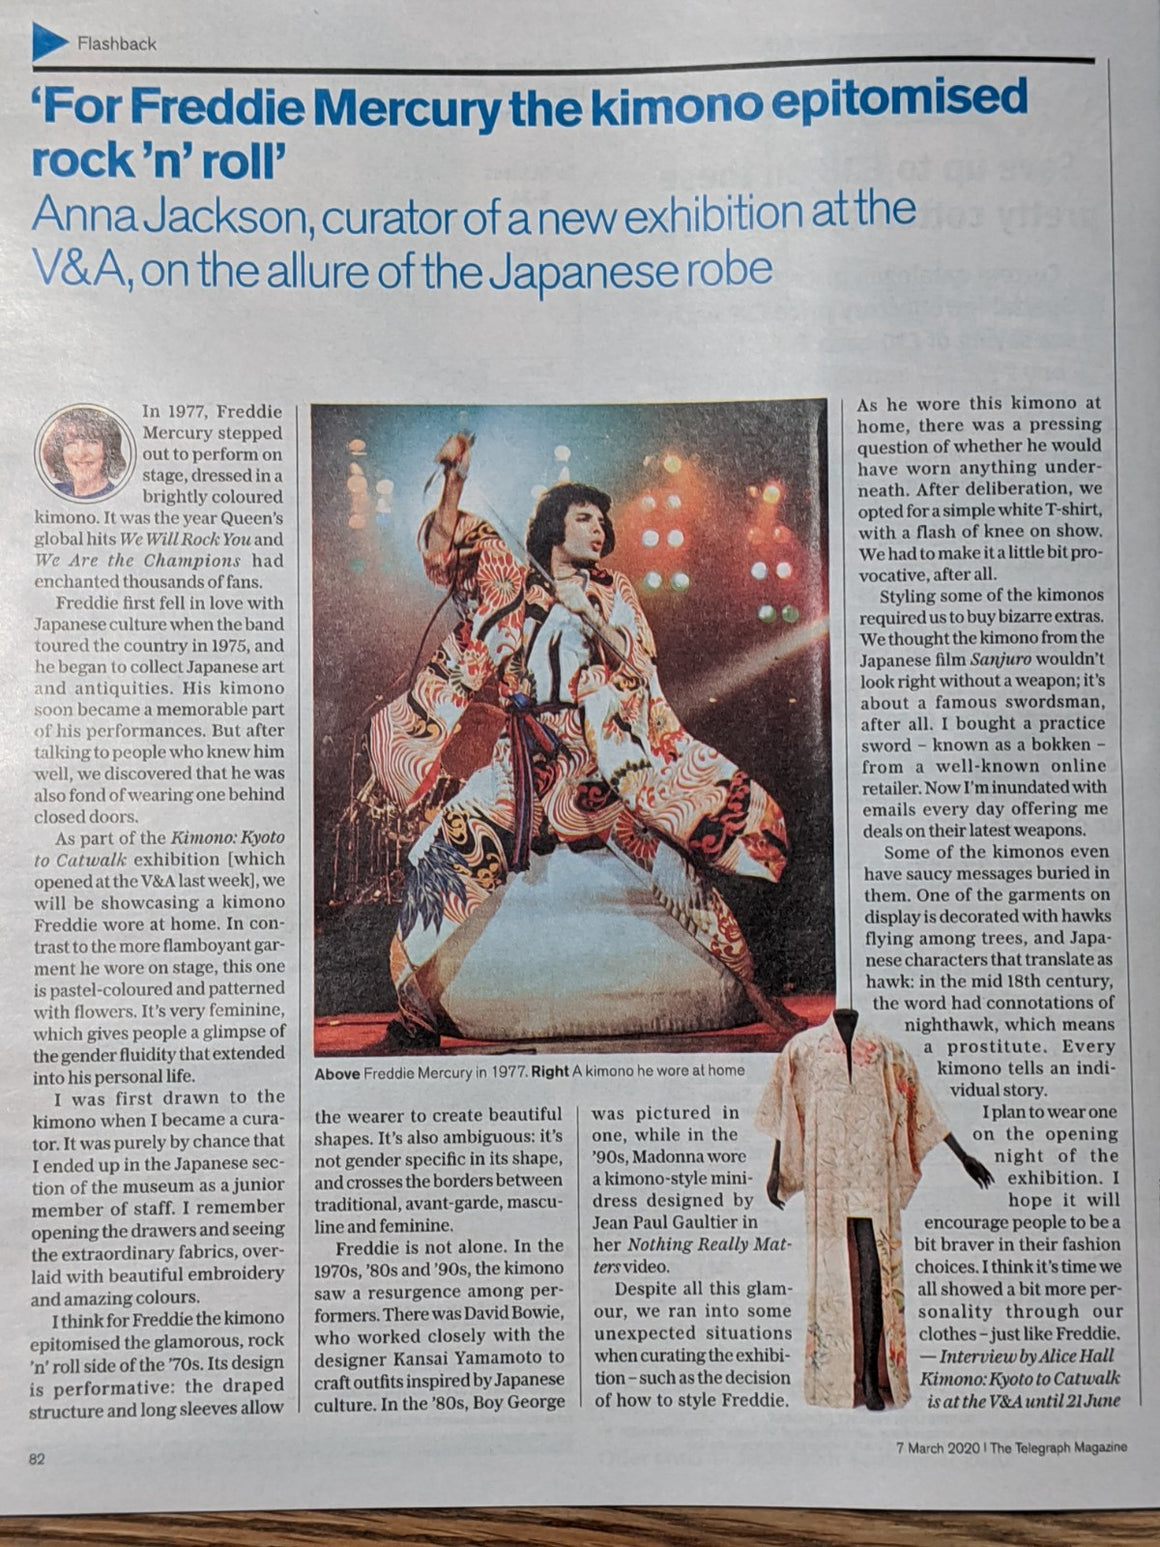 UK Telegraph Magazine 7 March 2020: Freddie Mercury Queen